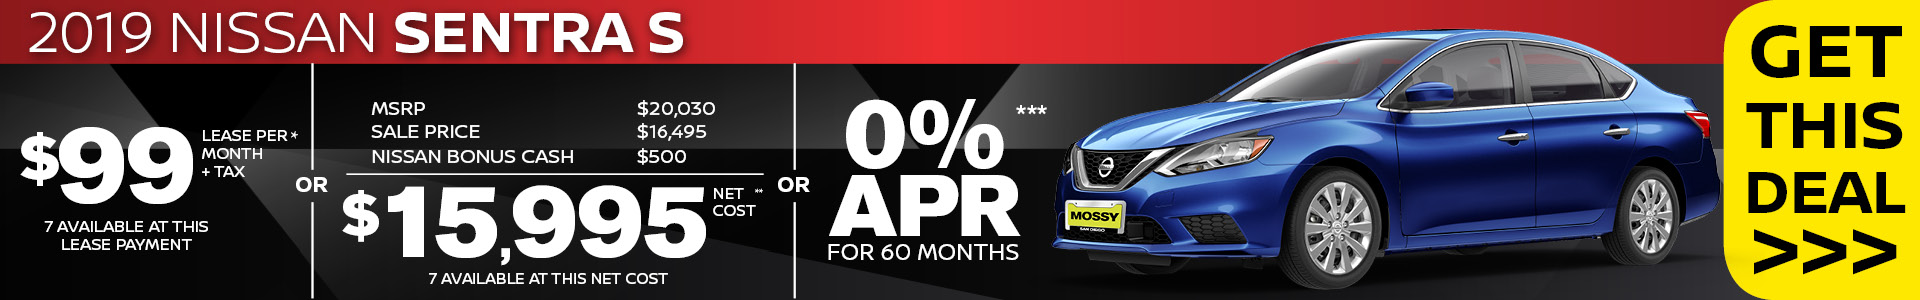 Mossy Nissan - Nissan Sentra $15,995 Purchase SRP